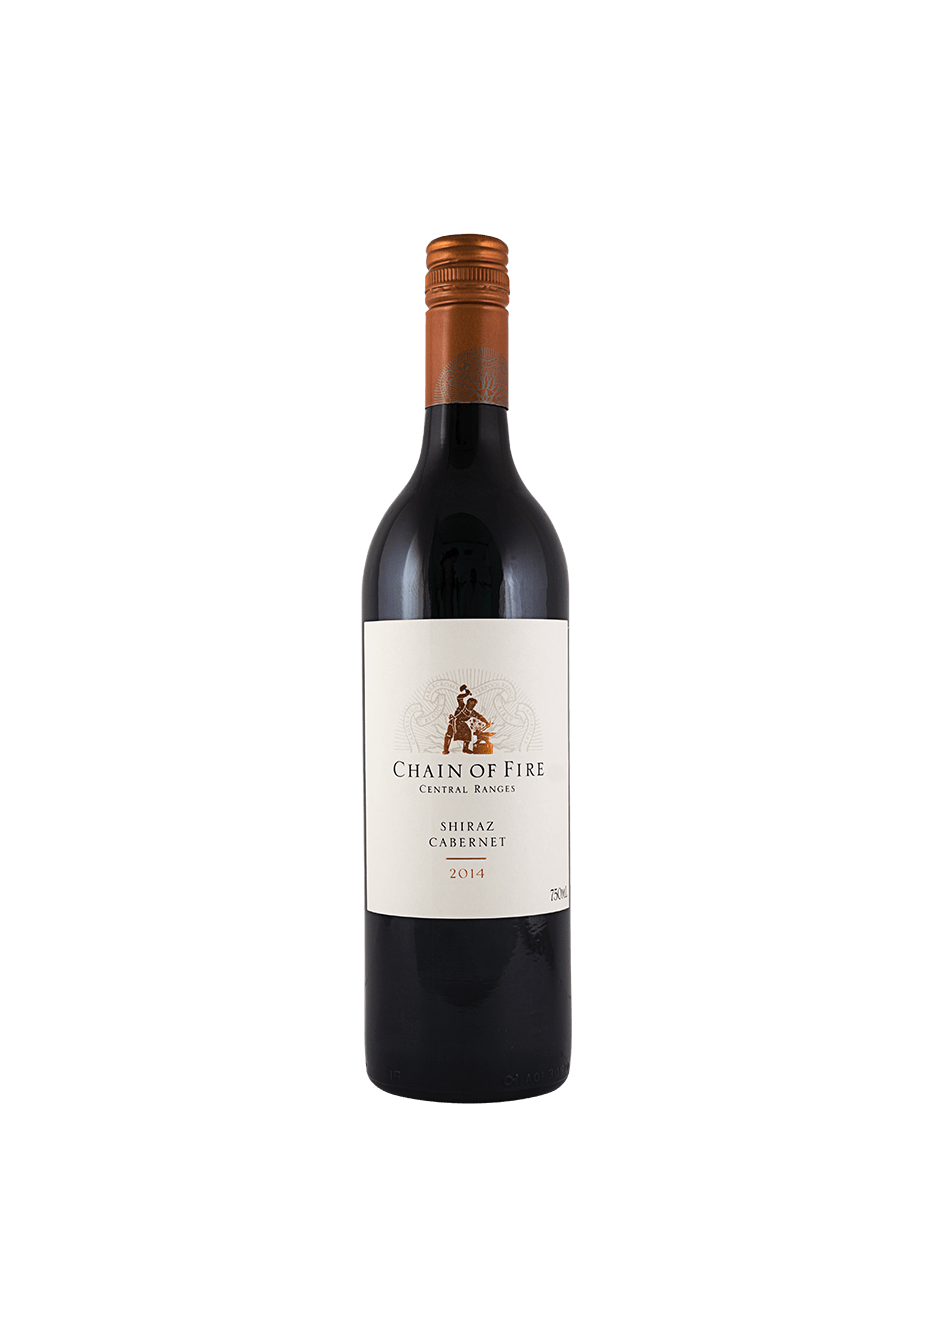 Chain Of Fire Shiraz Central Ranges Cabernet 2015